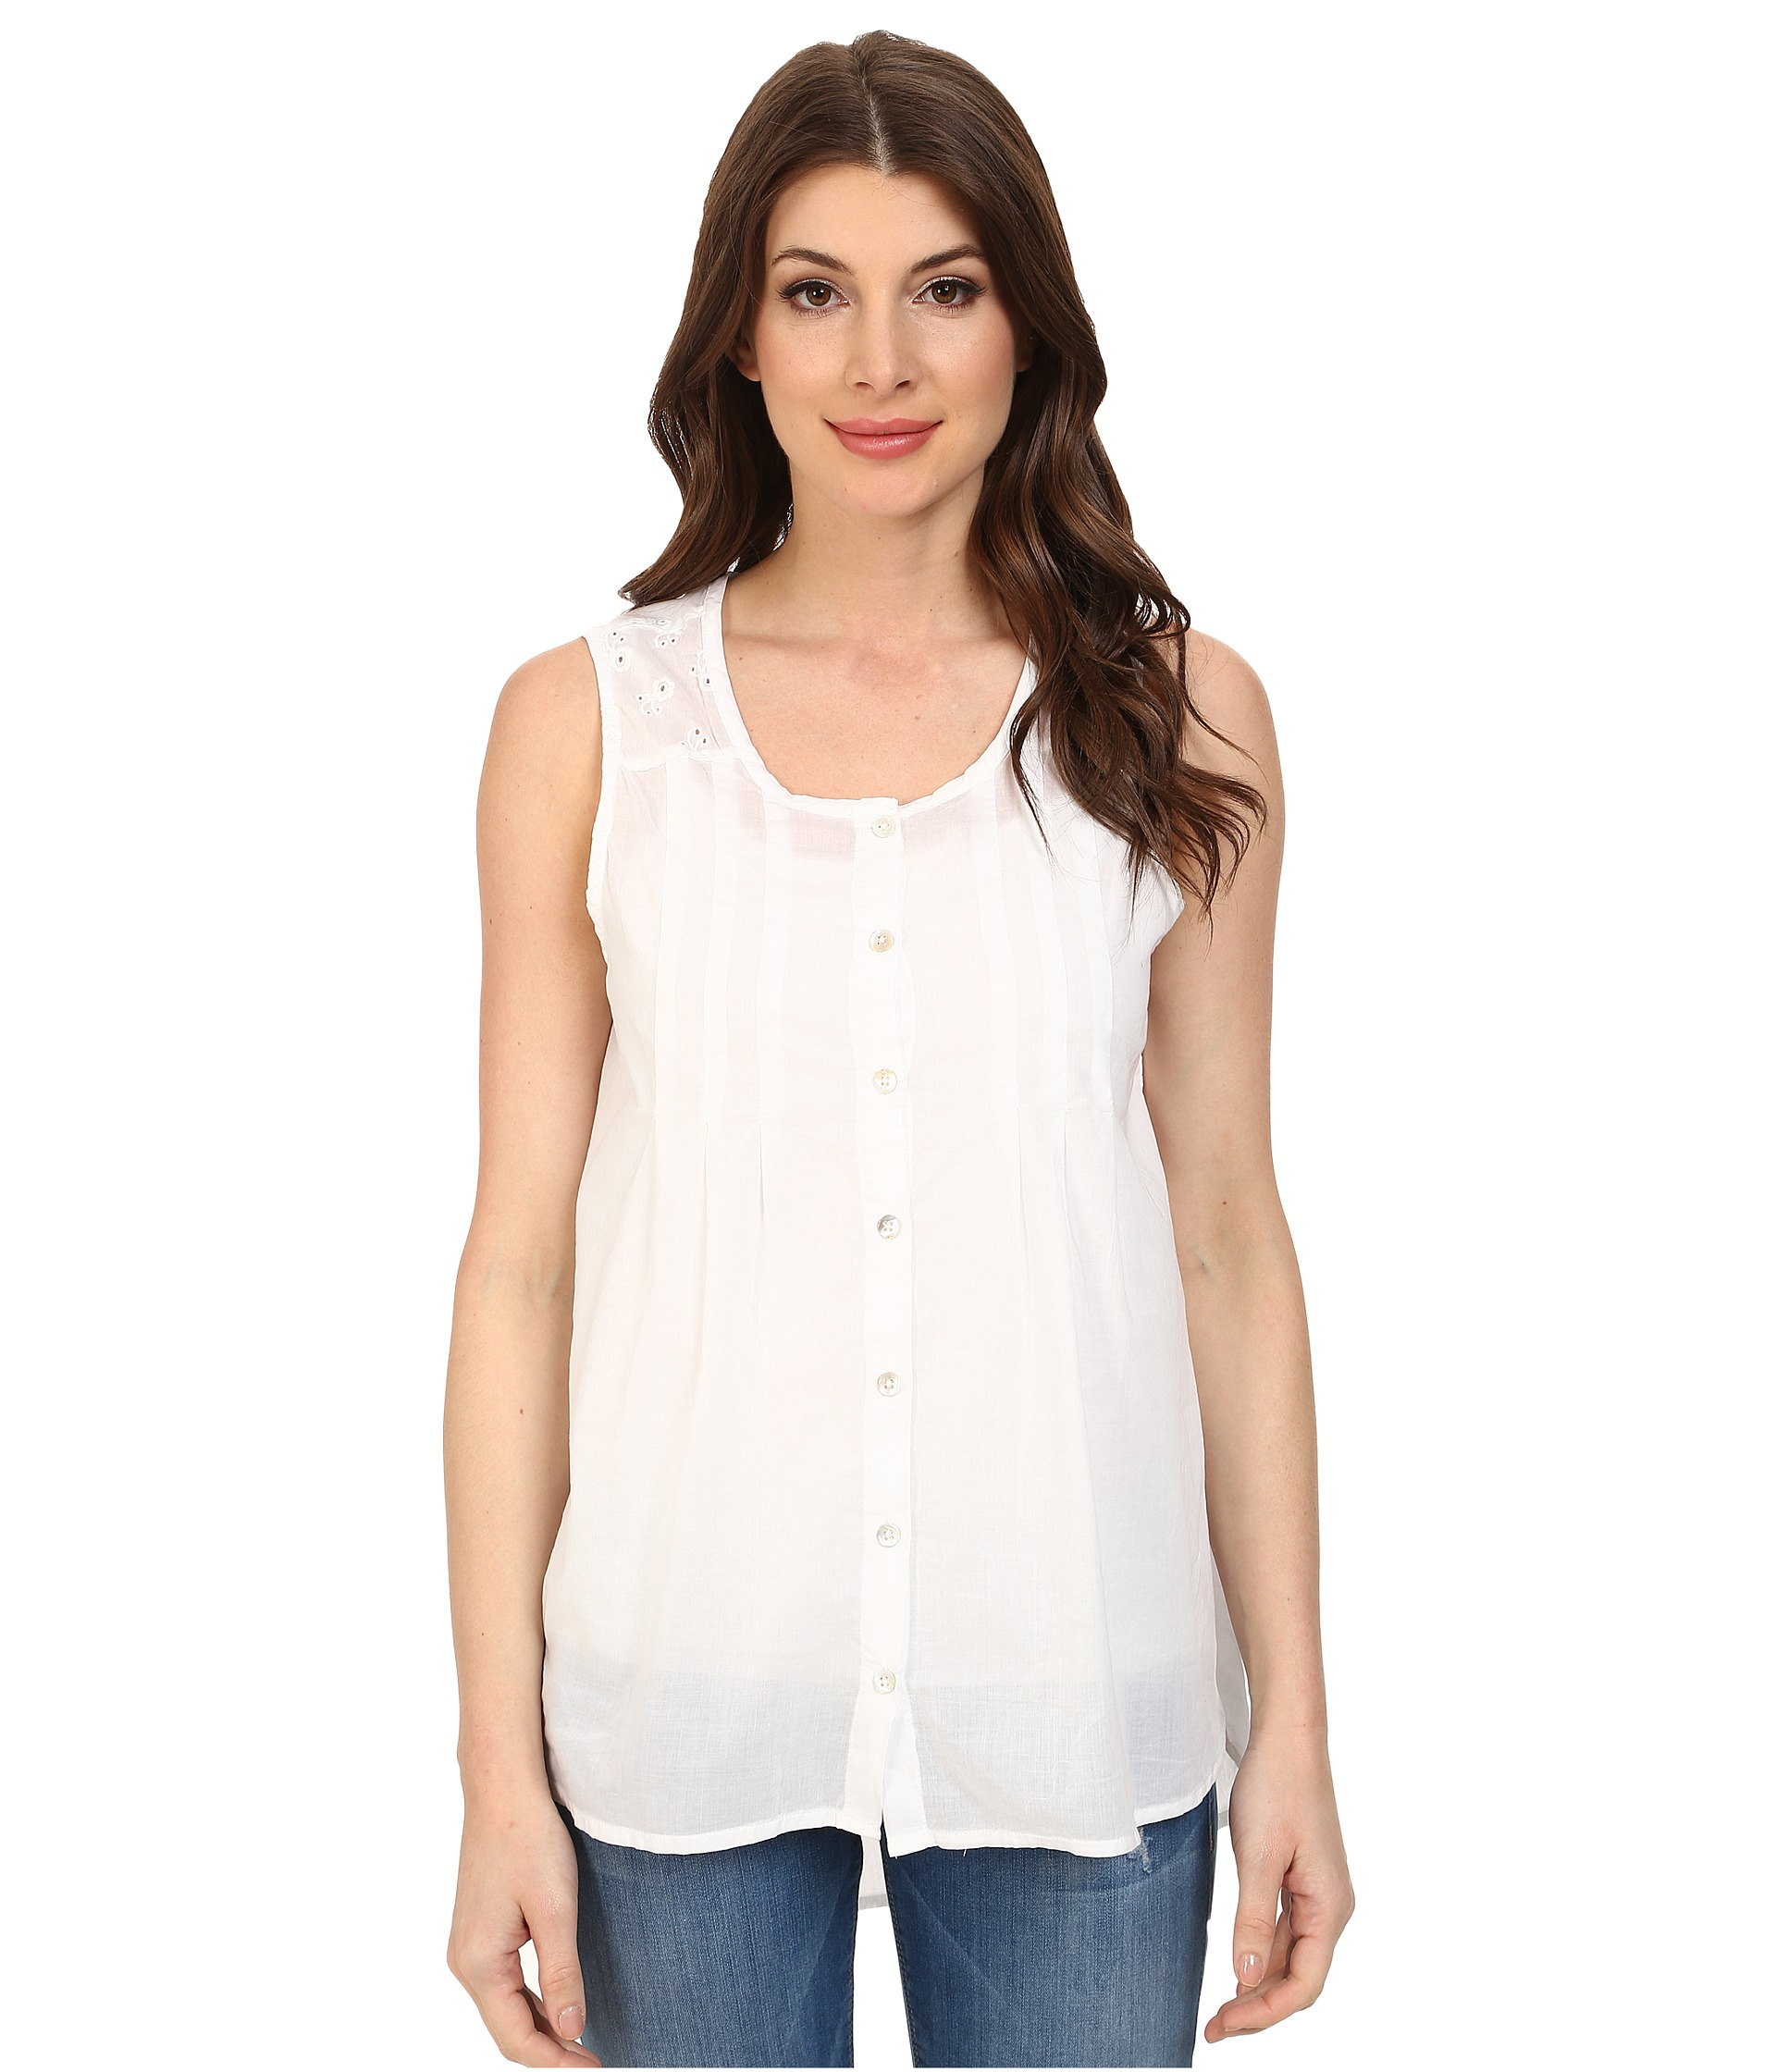 Shop women's cami and sleeveless tops, from women's camisoles to peplum tops for spring/summer here. Find frill tops, tie shoulder and crop tops here.